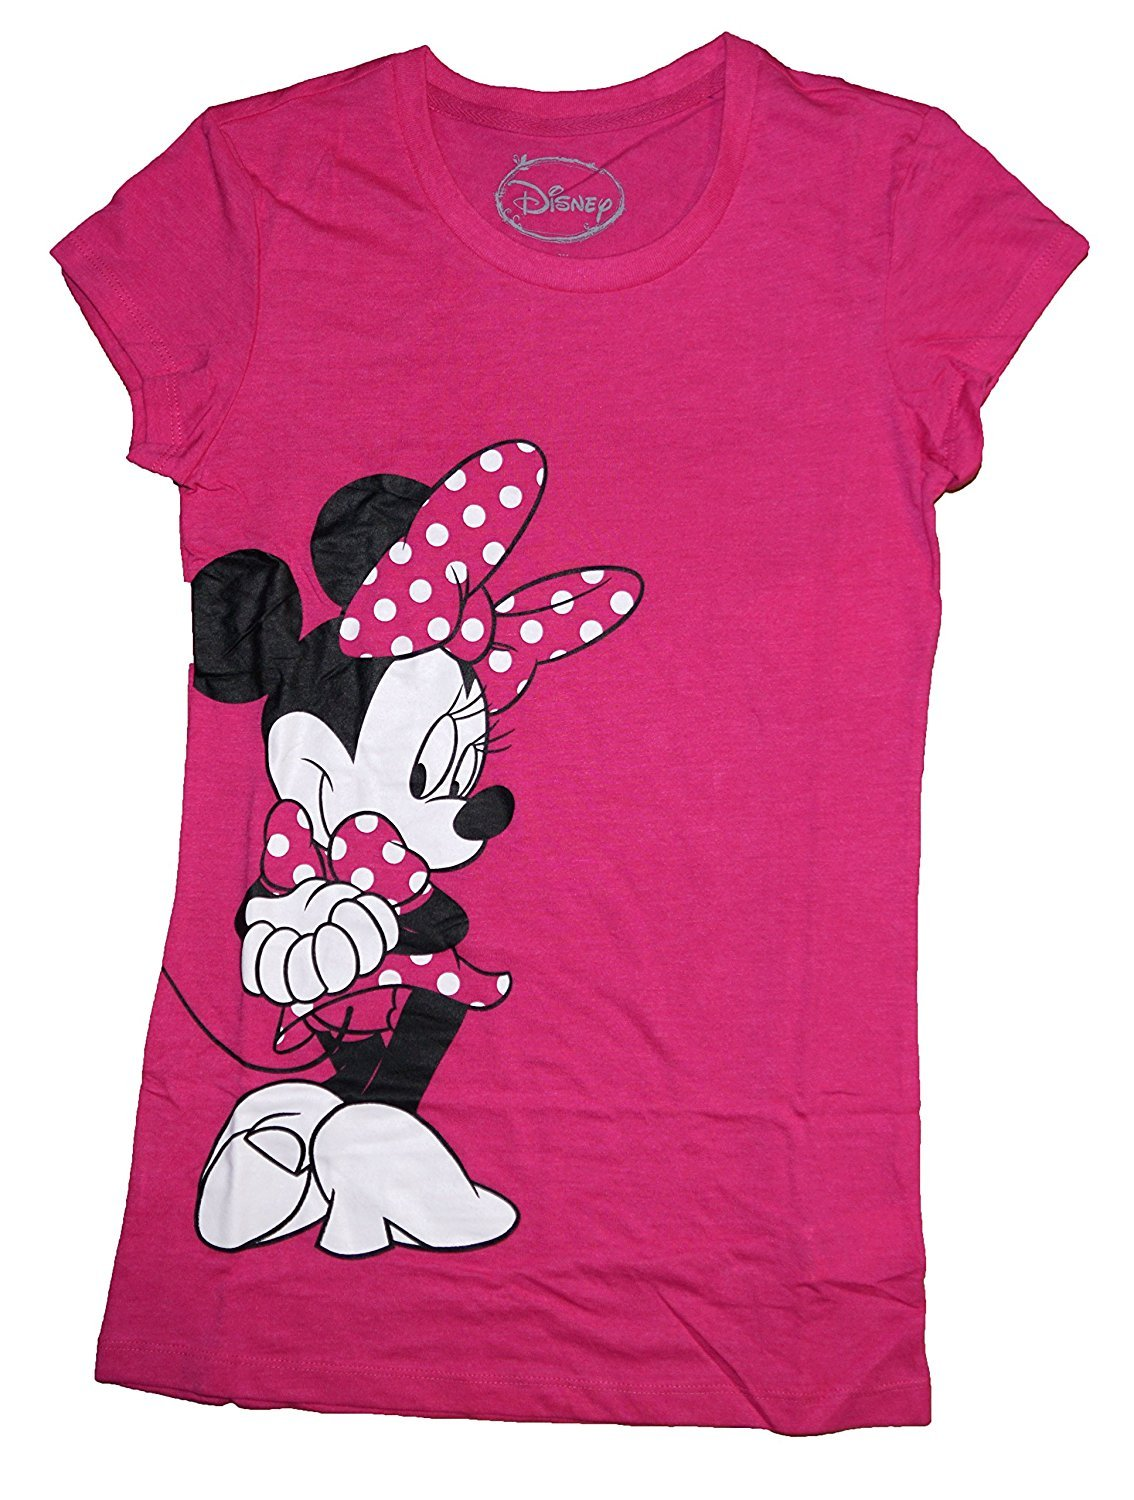 Disney Classic Minnie Mouse Womens Pajama T Shirt Top - Pink